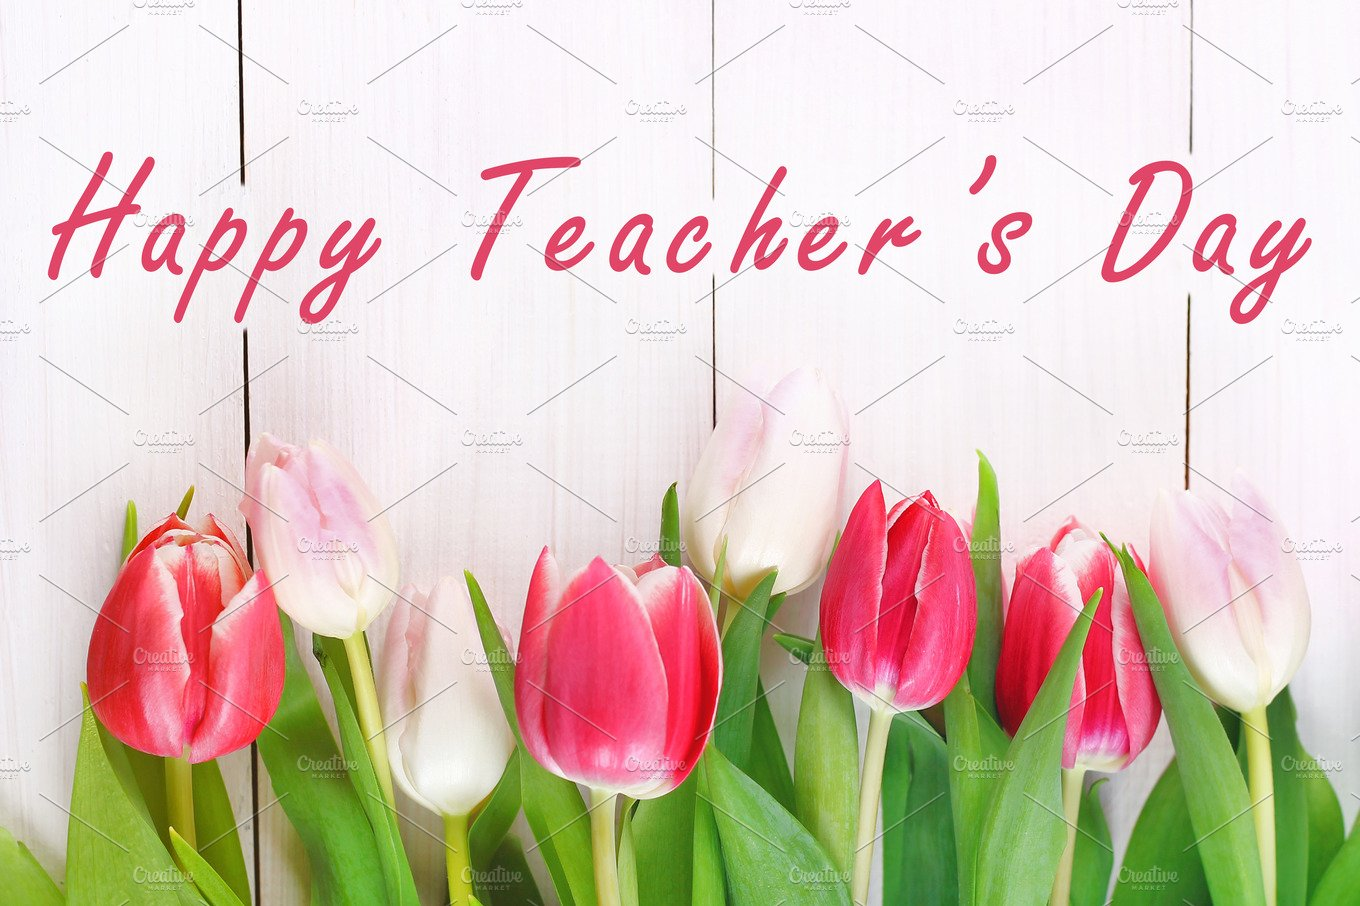 Happy Teachers Day With Tulip Flower Message For Teacher